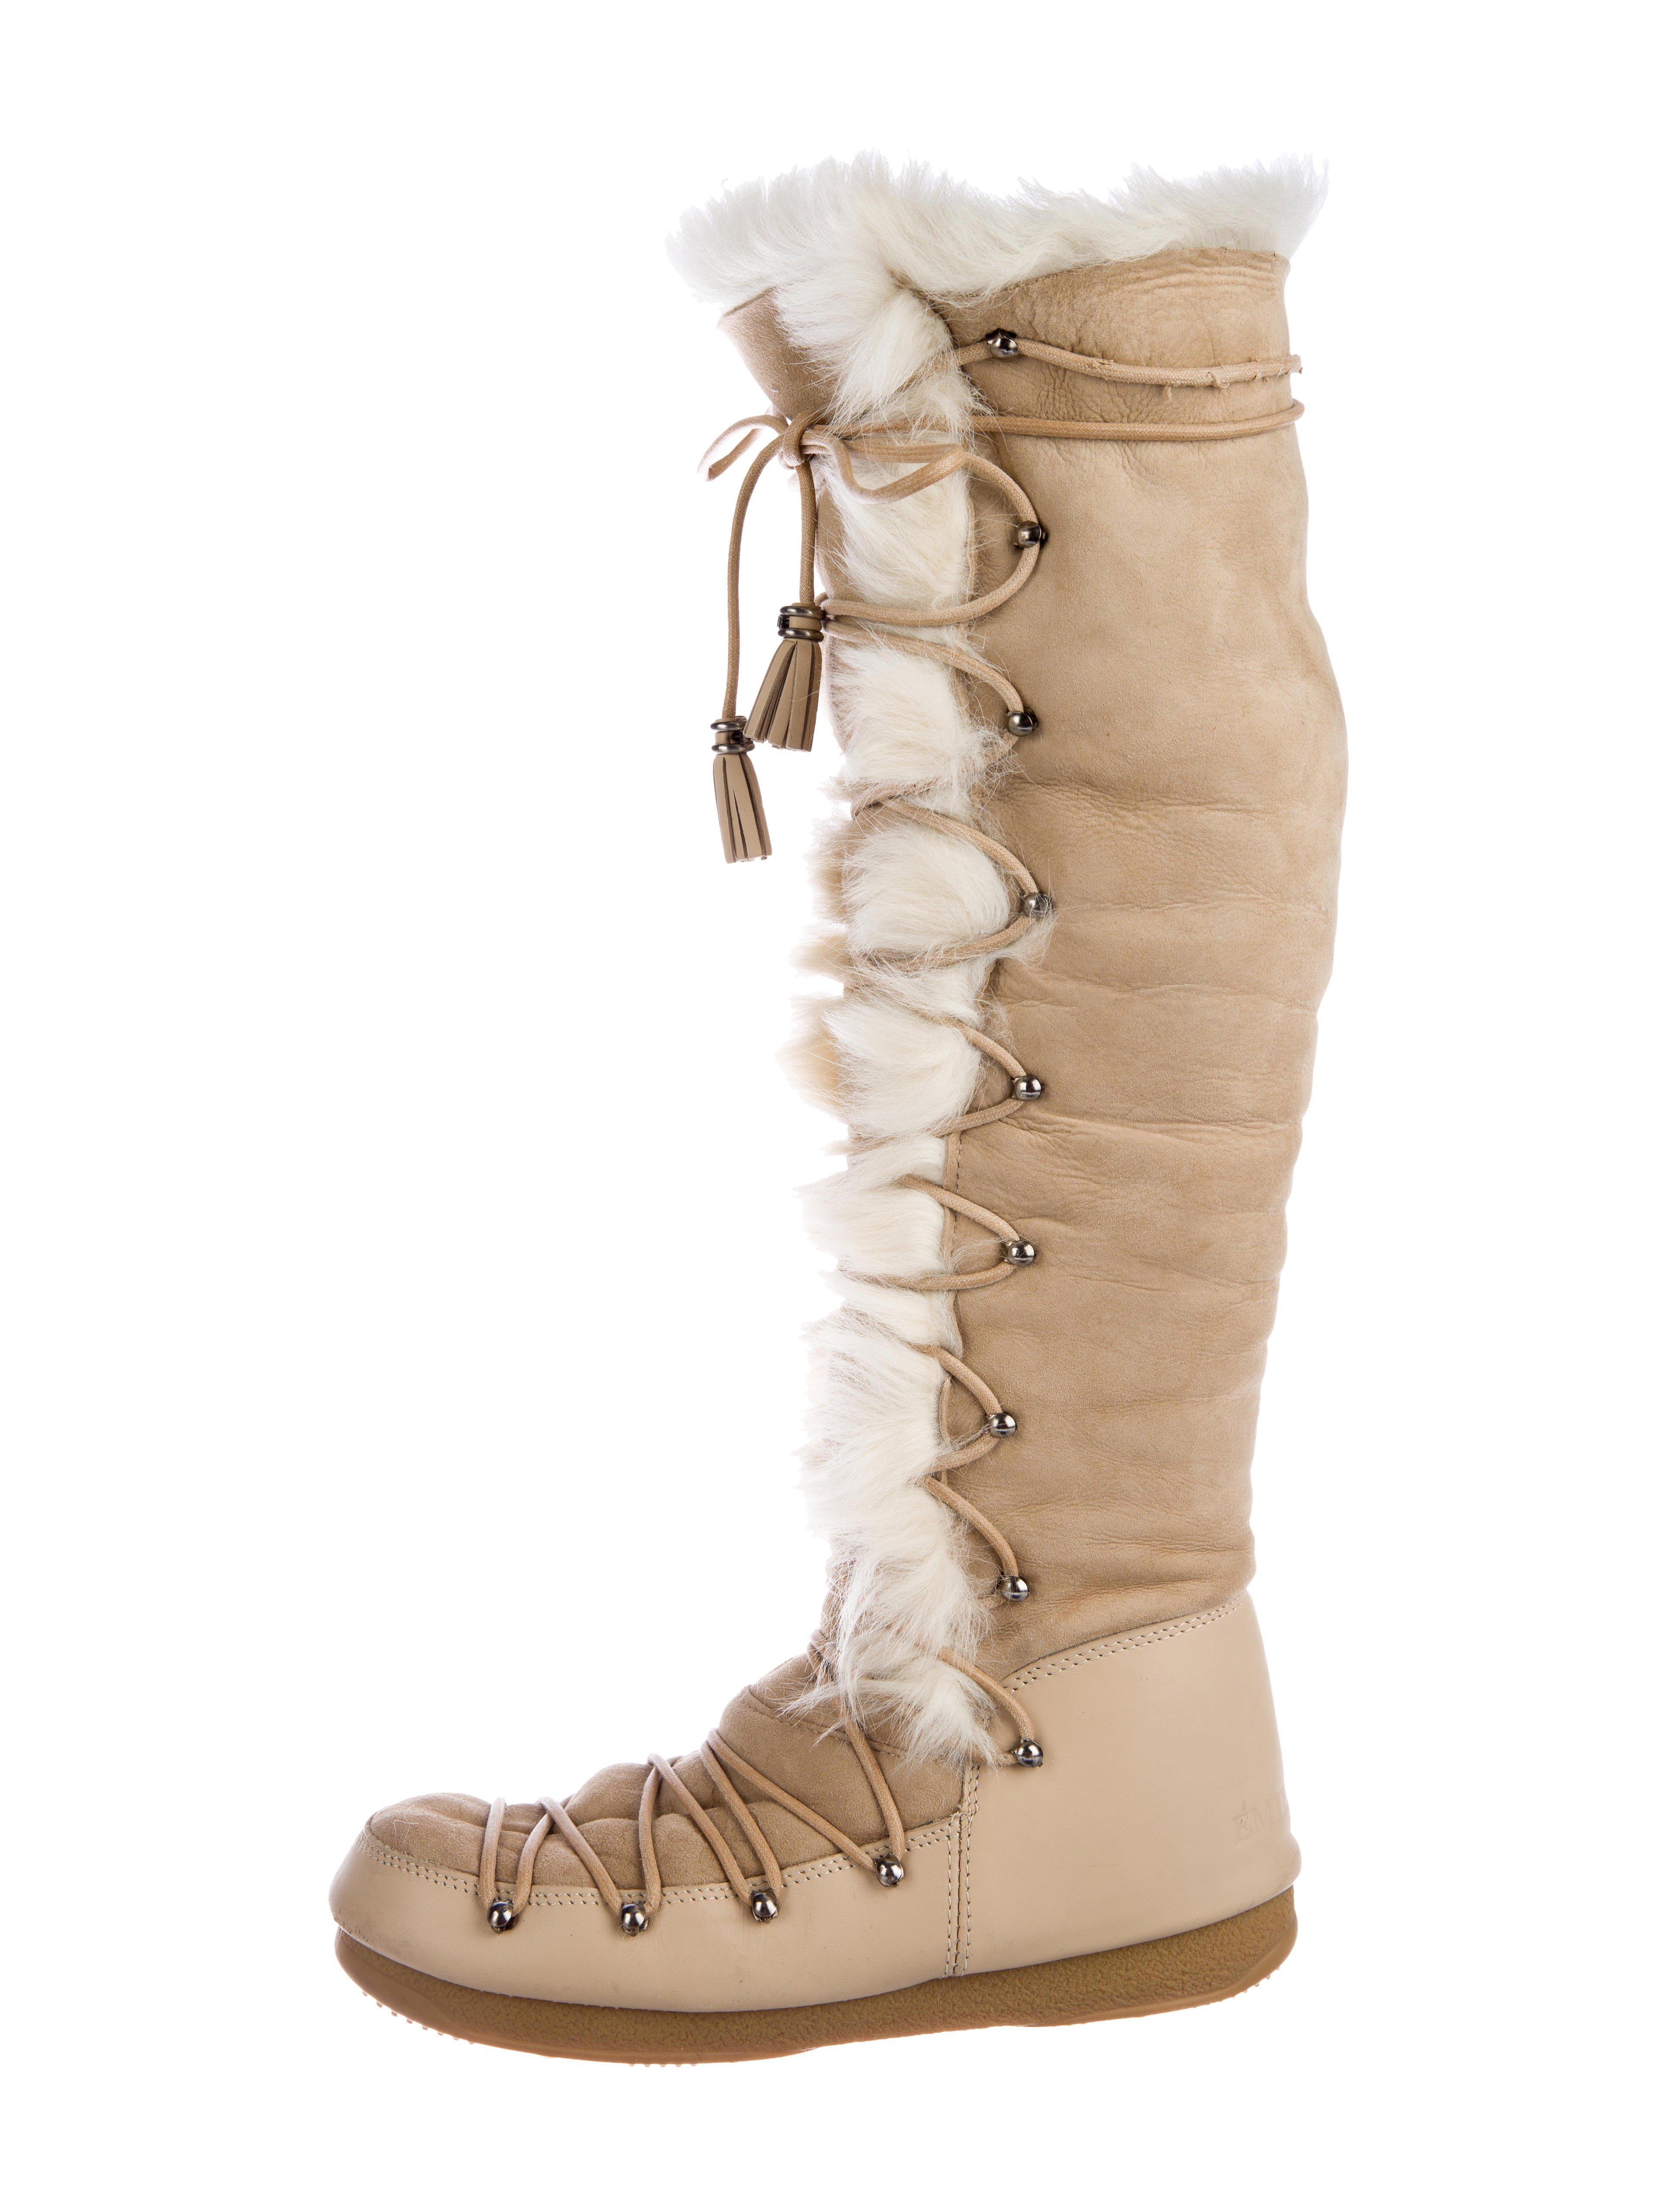 Emilio Pucci Shearling Knee-High Snow Boots buy cheap online clearance shop 2014 newest for sale Huz7n5AF